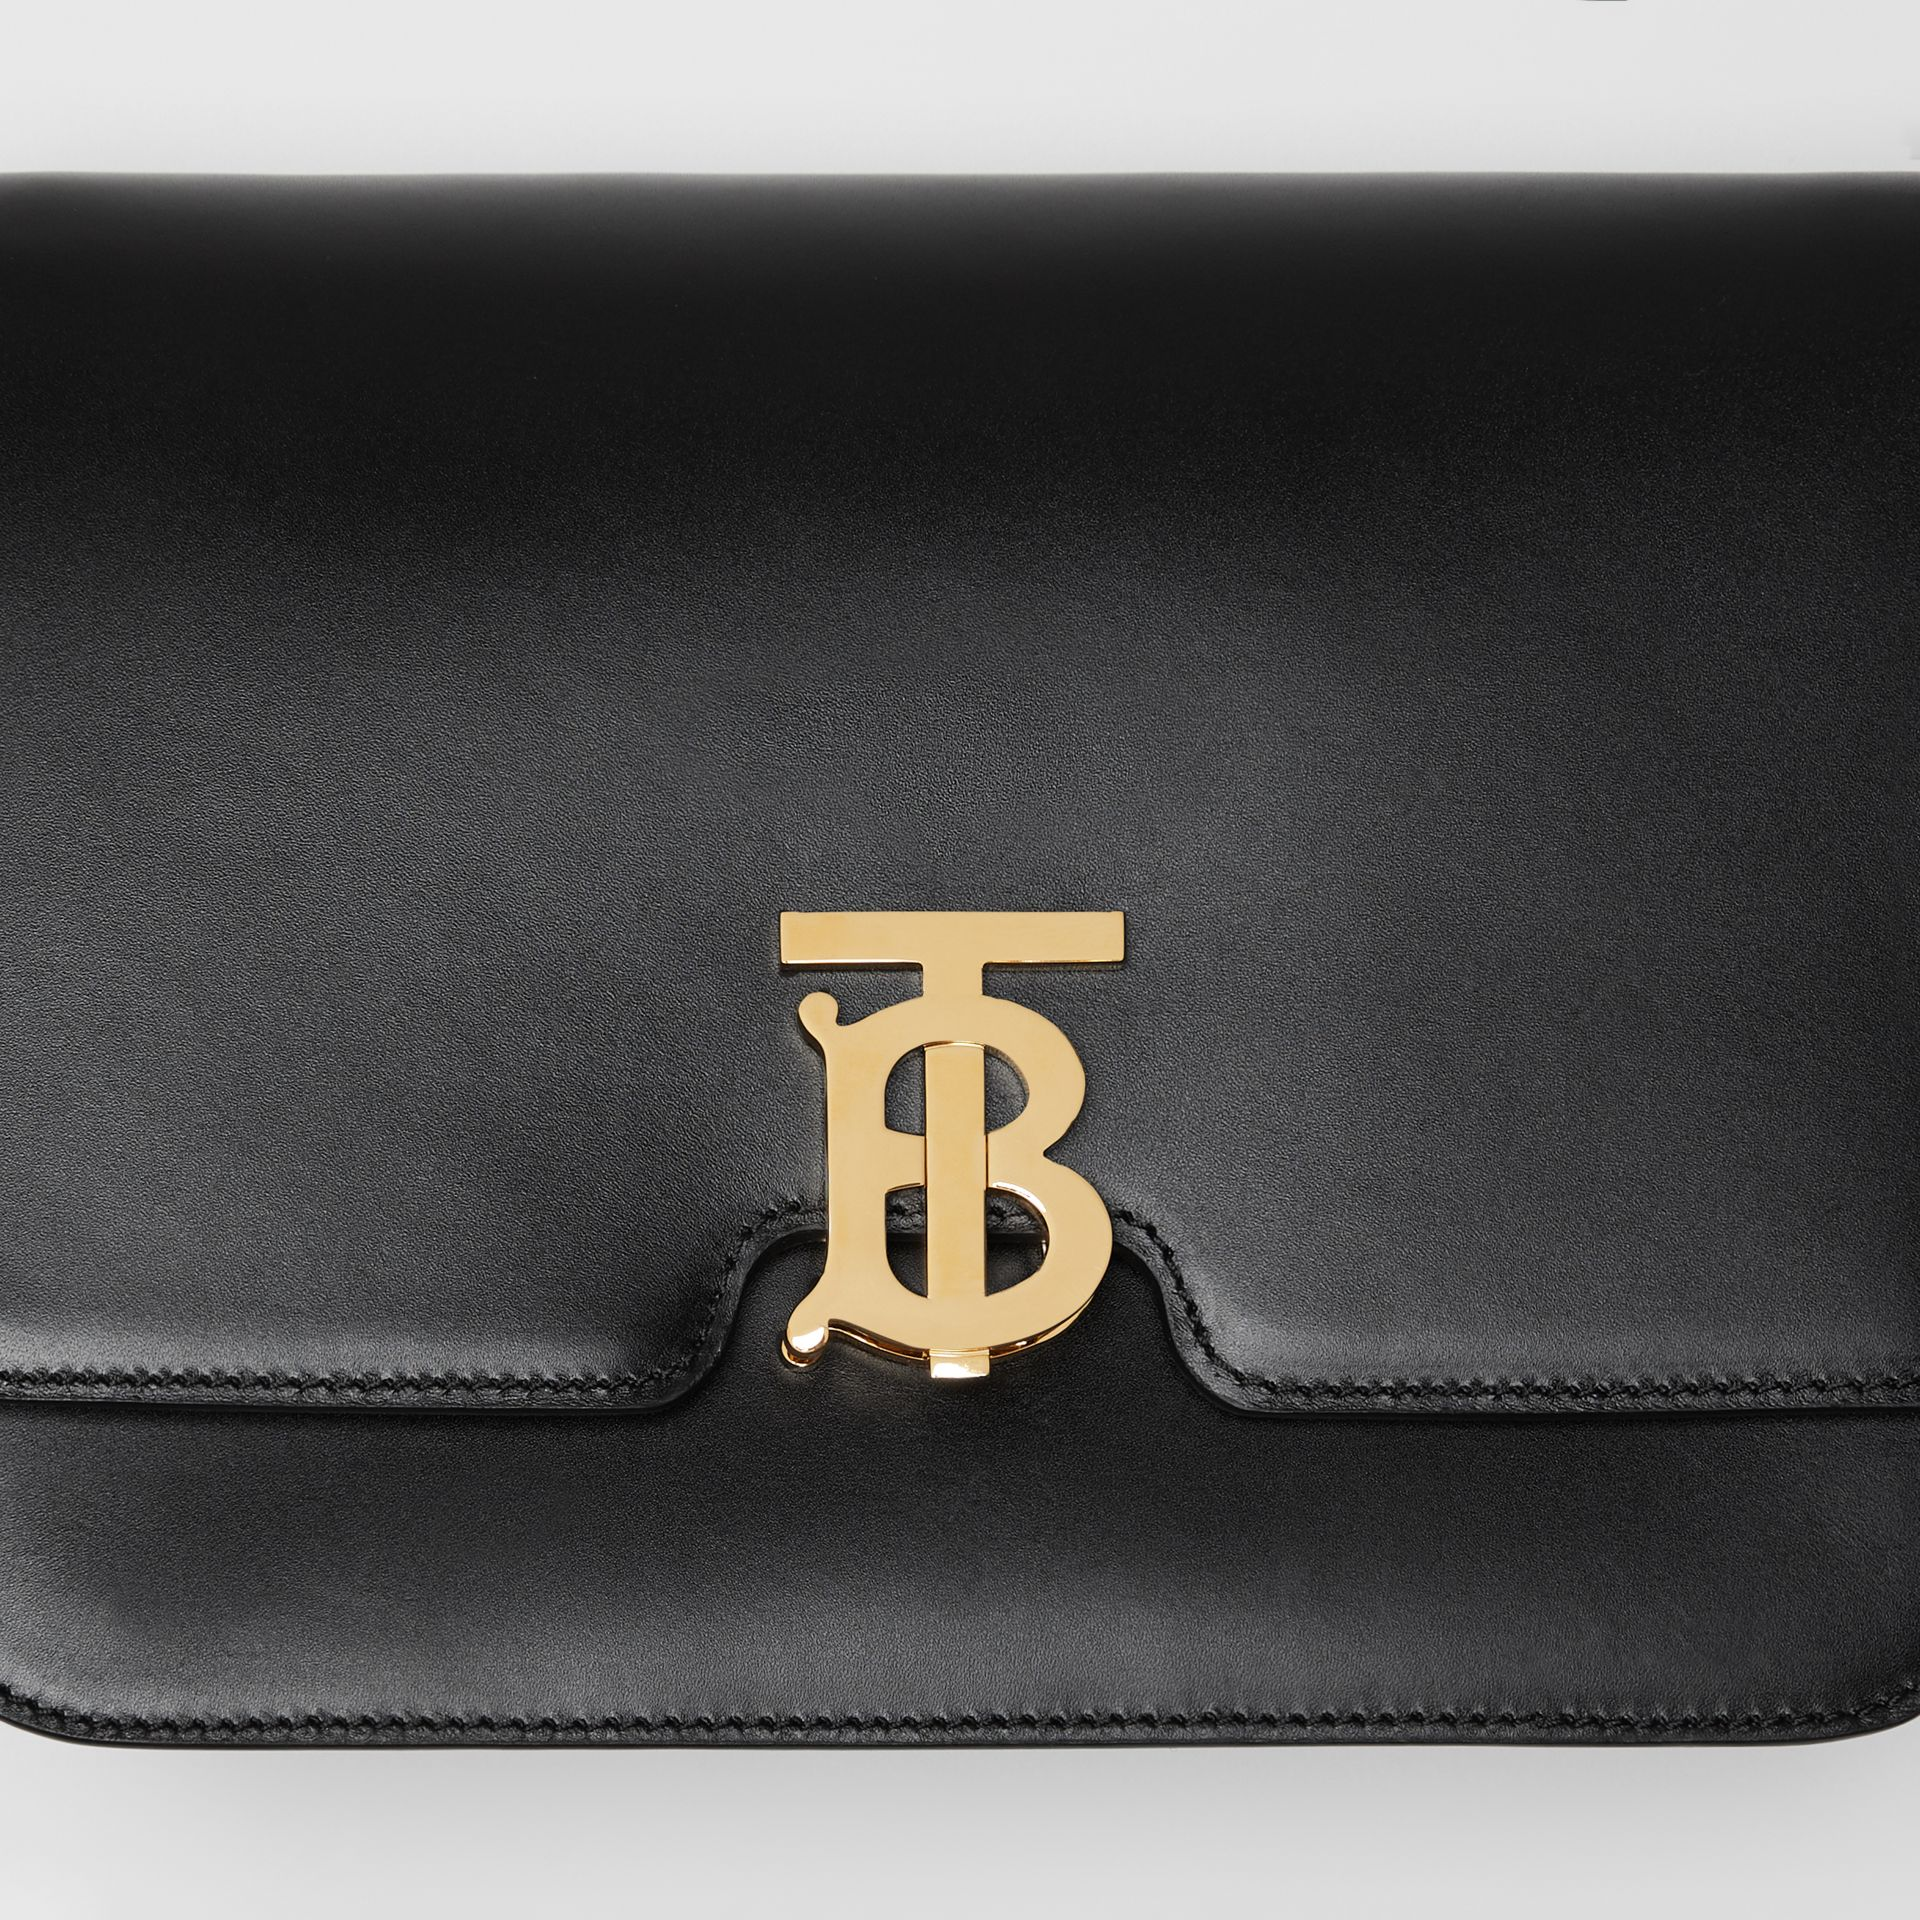 Medium Leather TB Bag in Black - Women | Burberry - gallery image 8